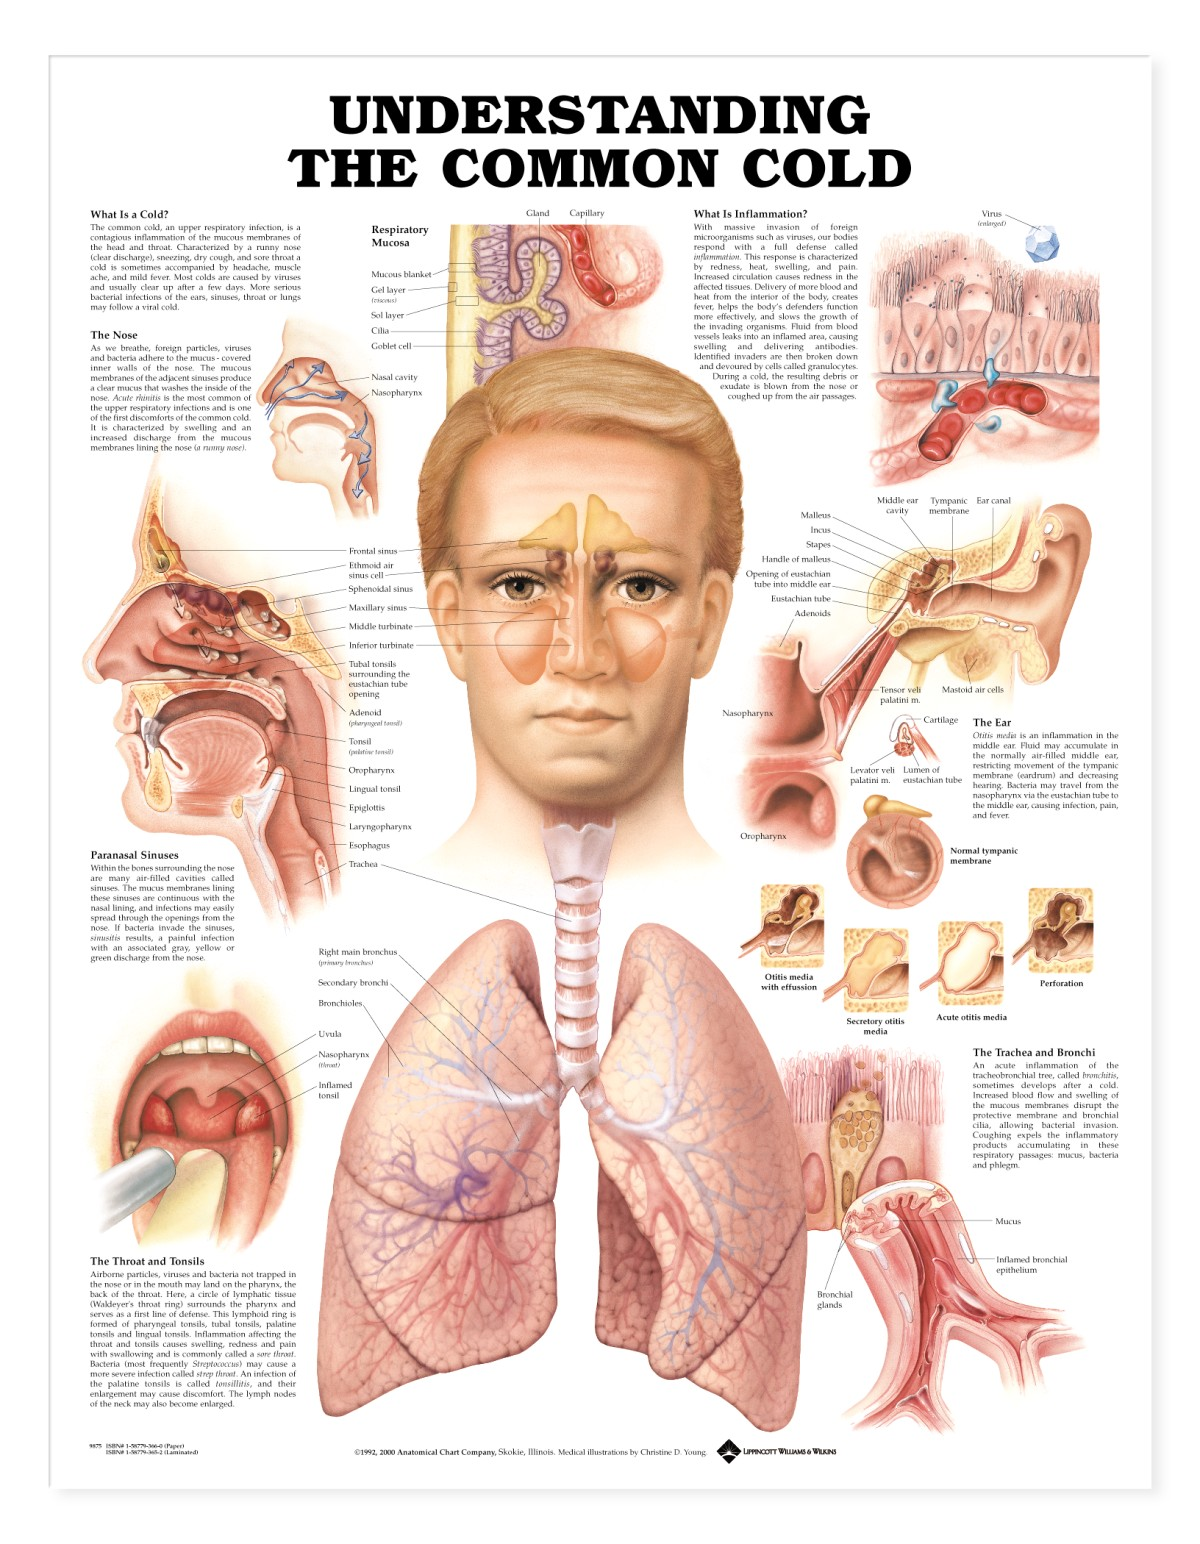 http://healthlifemedia.com/healthy/wp-content/uploads/2014/12/common-cold.jpg